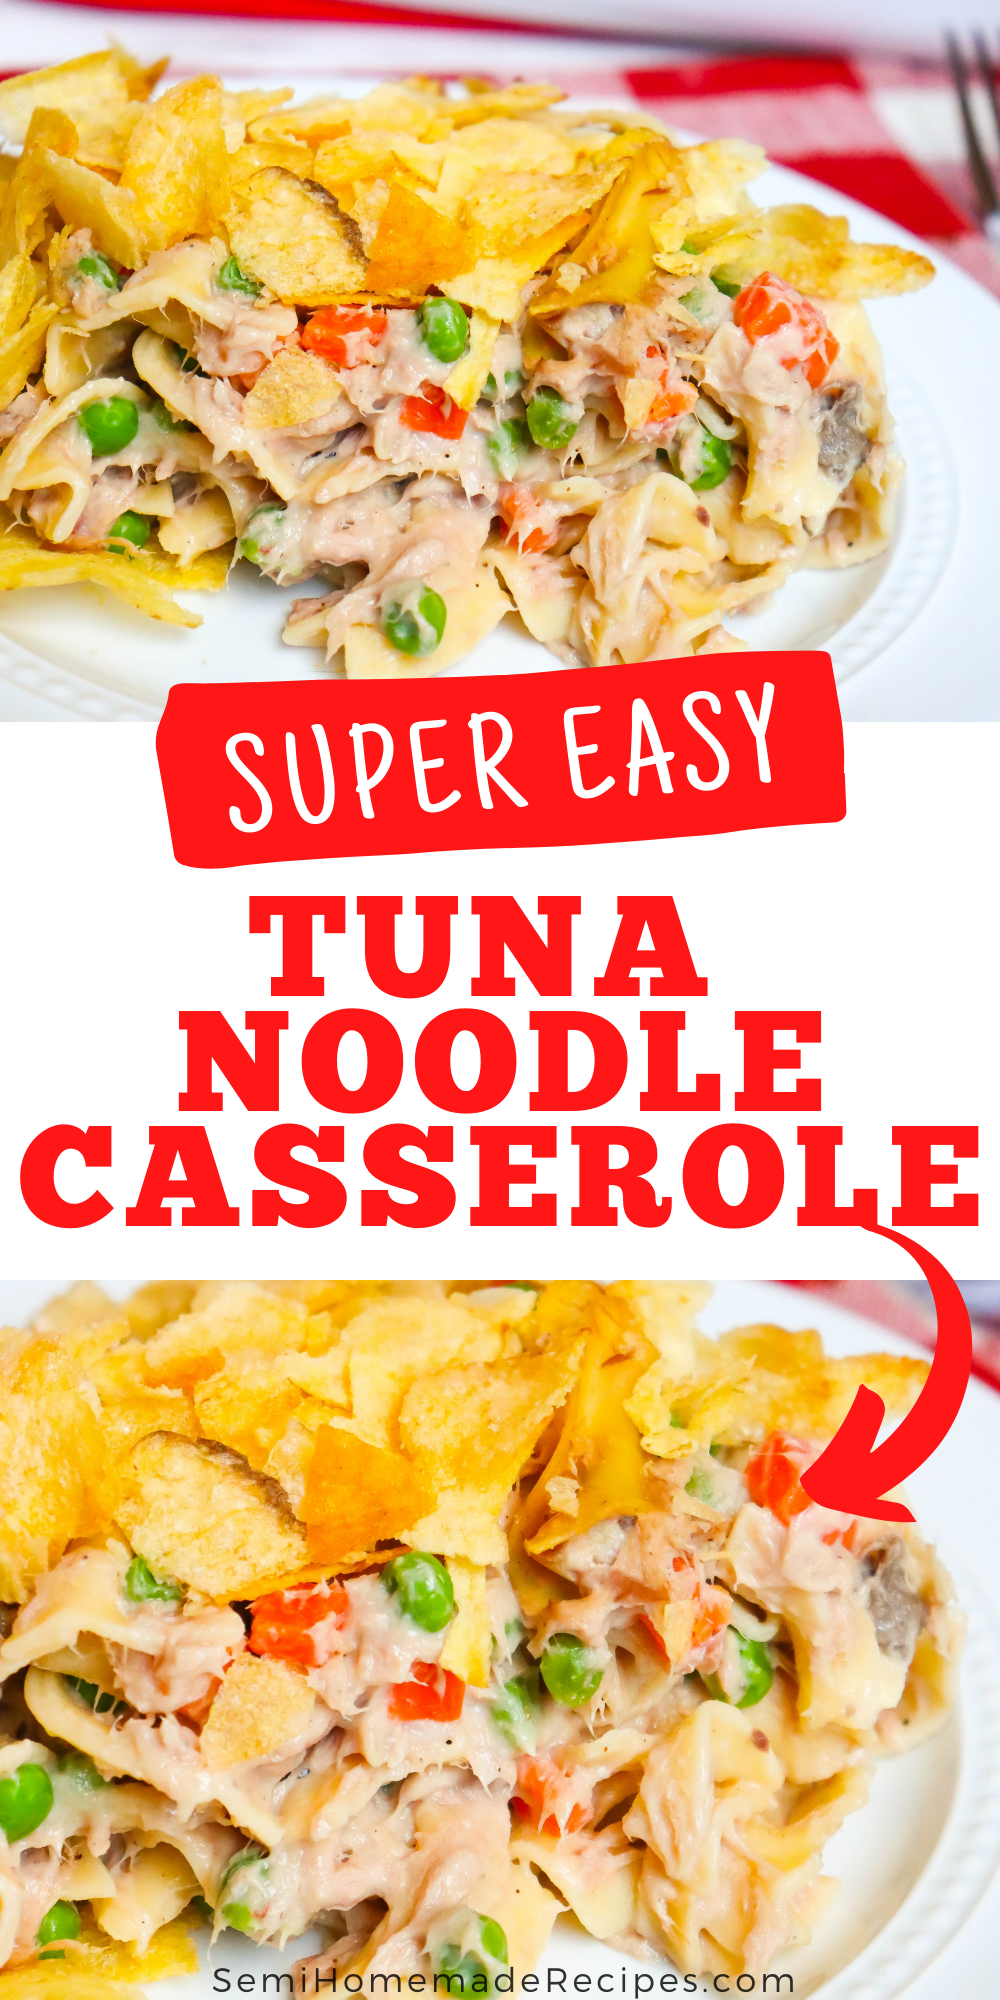 Easy Tuna Noodle Casserole - a classic favorite with egg noodles, lots of tuna, green peas, carrots and classic mushroom soup. We packed even more tuna into our casserole than the average tuna casserole so you get tuna in every bite!